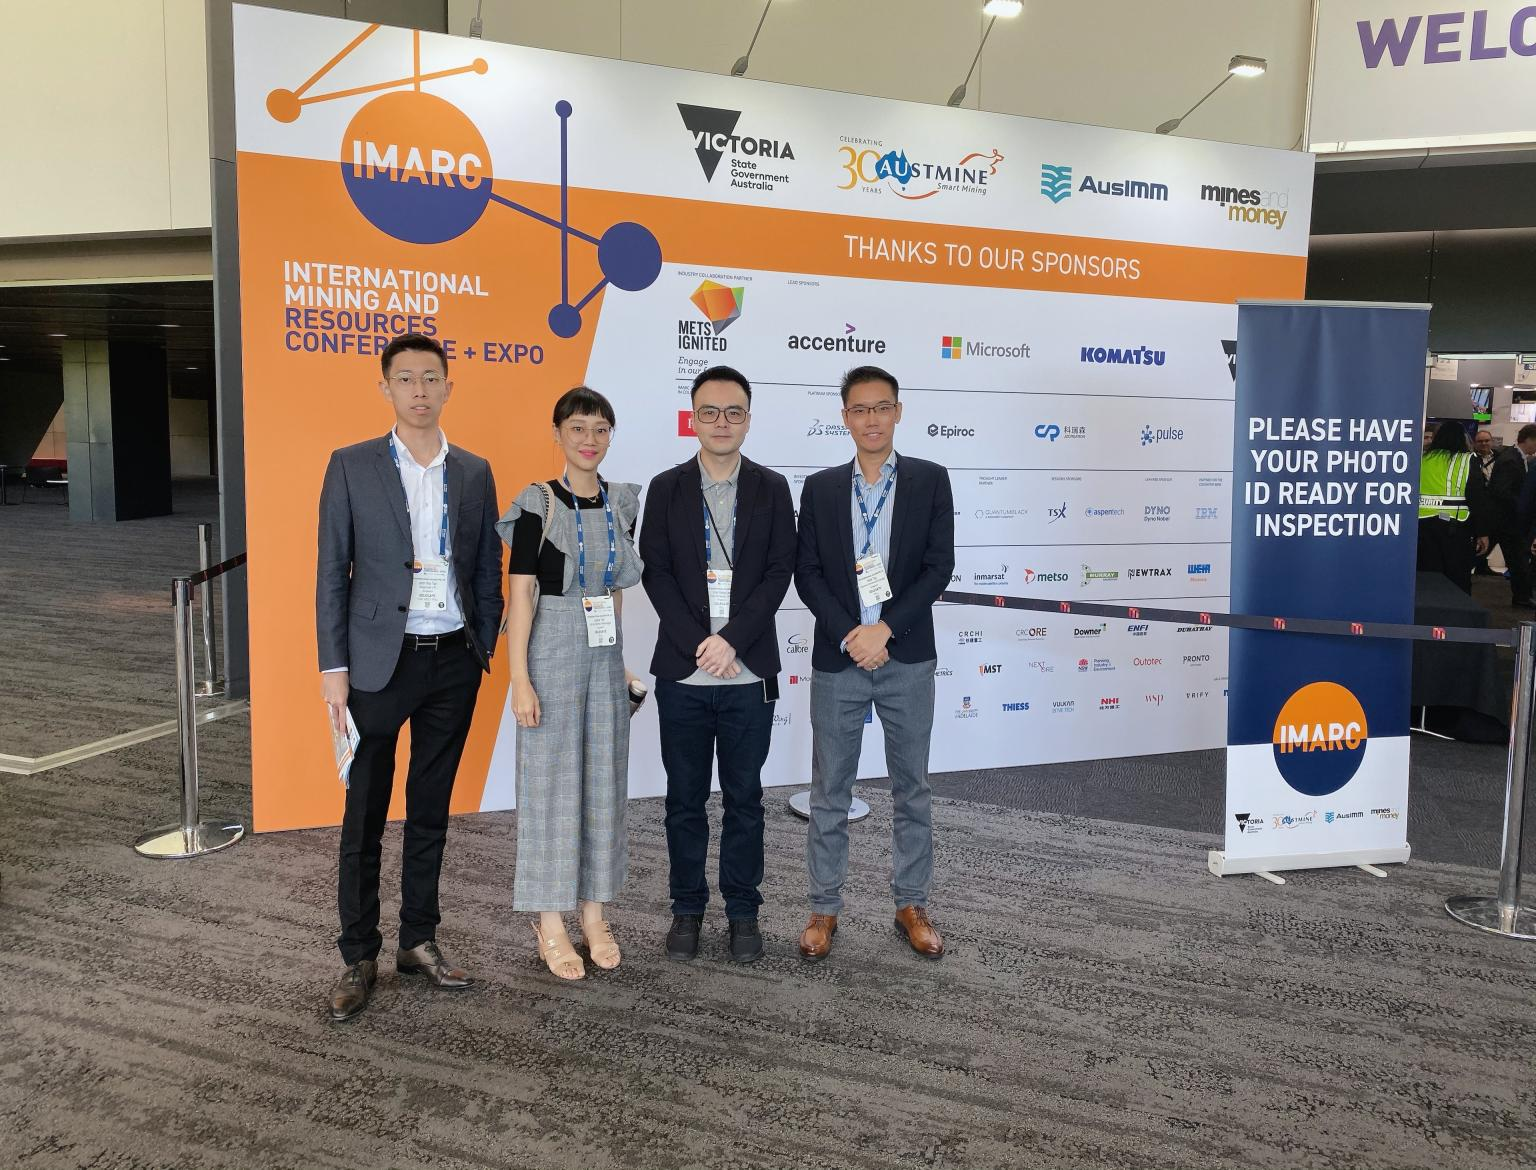 6th Annual International Mining and Resources Conference (IMARC) in Melbourne, Australia